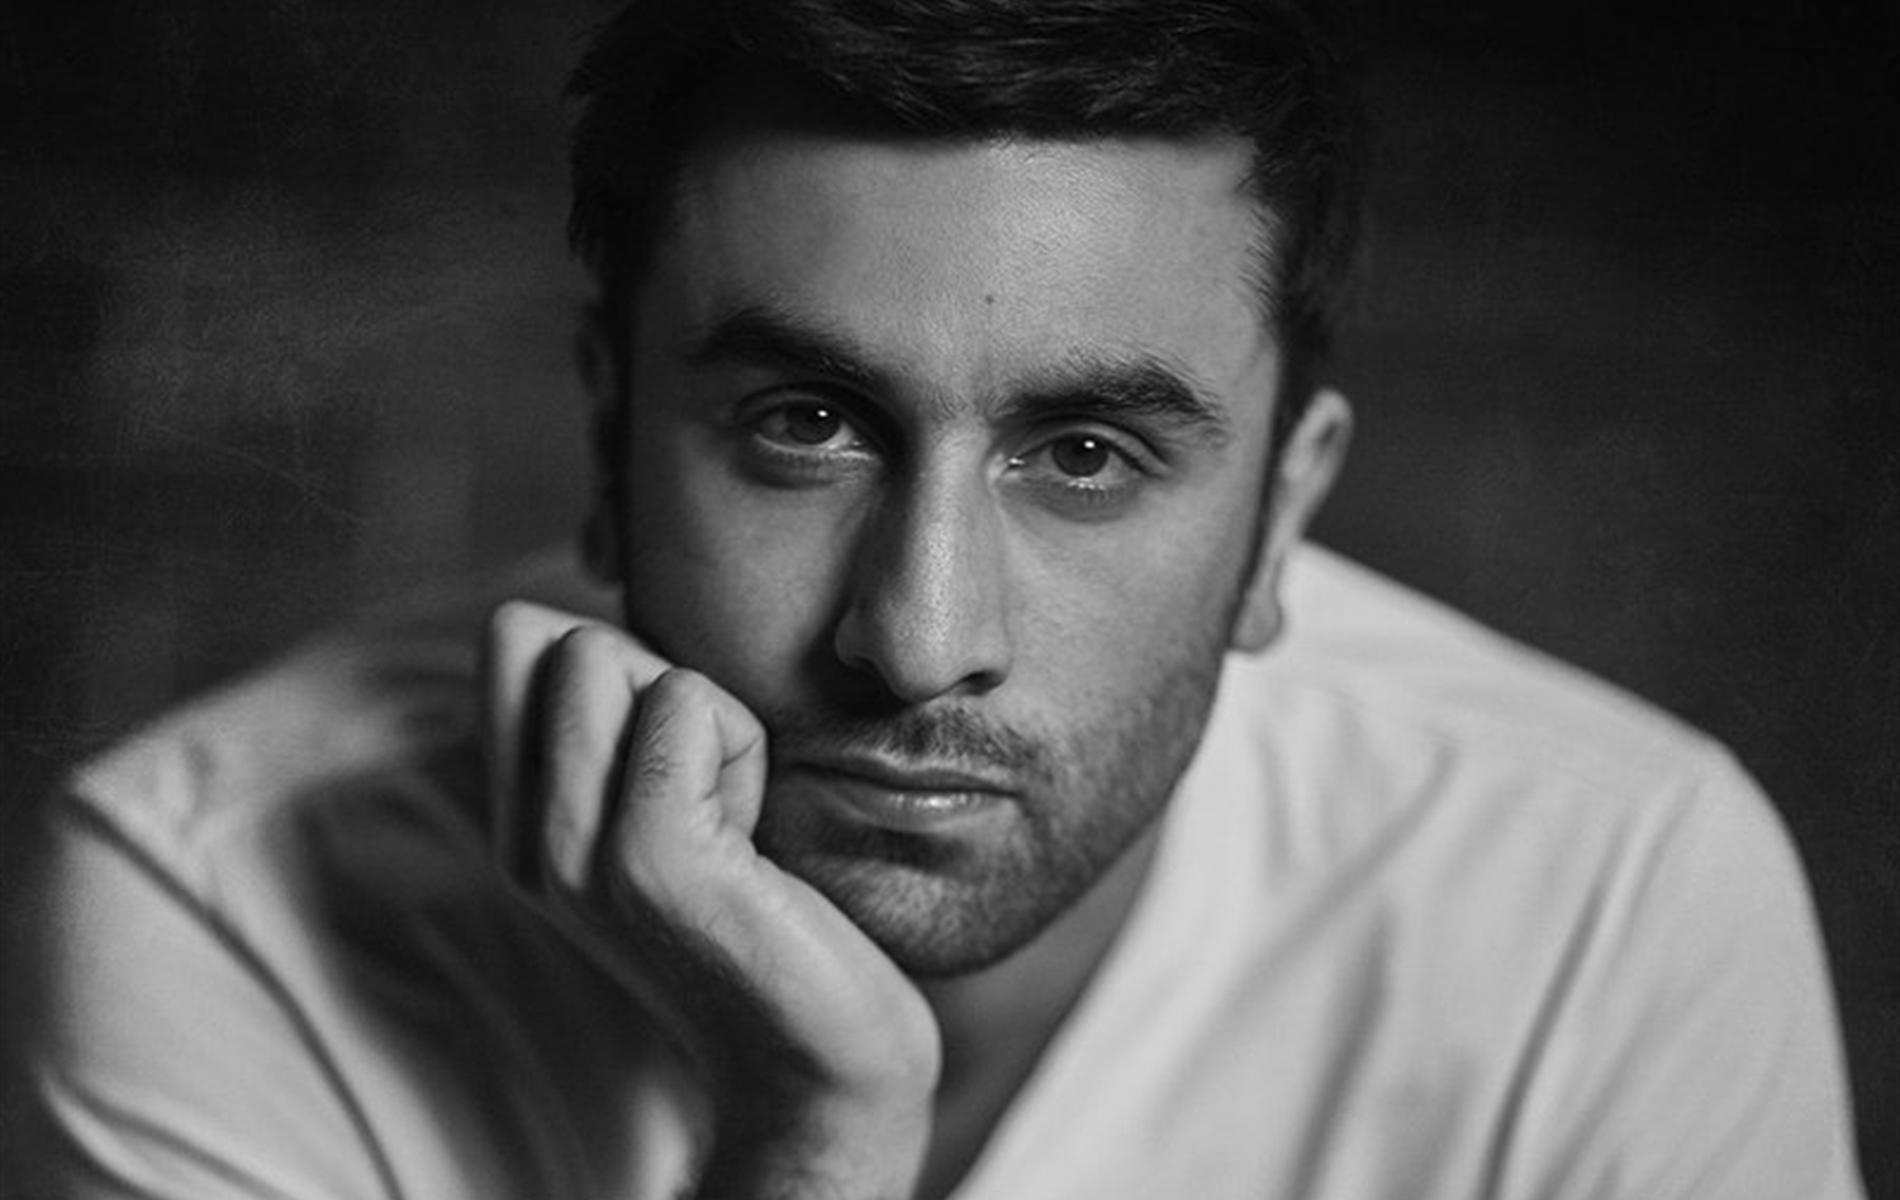 Ranbir Kapoor's Birthday : Here Are Some Of The Actor's Best Performances